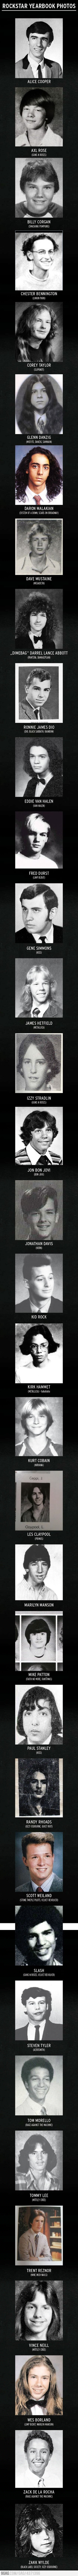 the yearbook still haunts ... some are funny, some are shocking...like Kurt Cobain, he looks so...clean